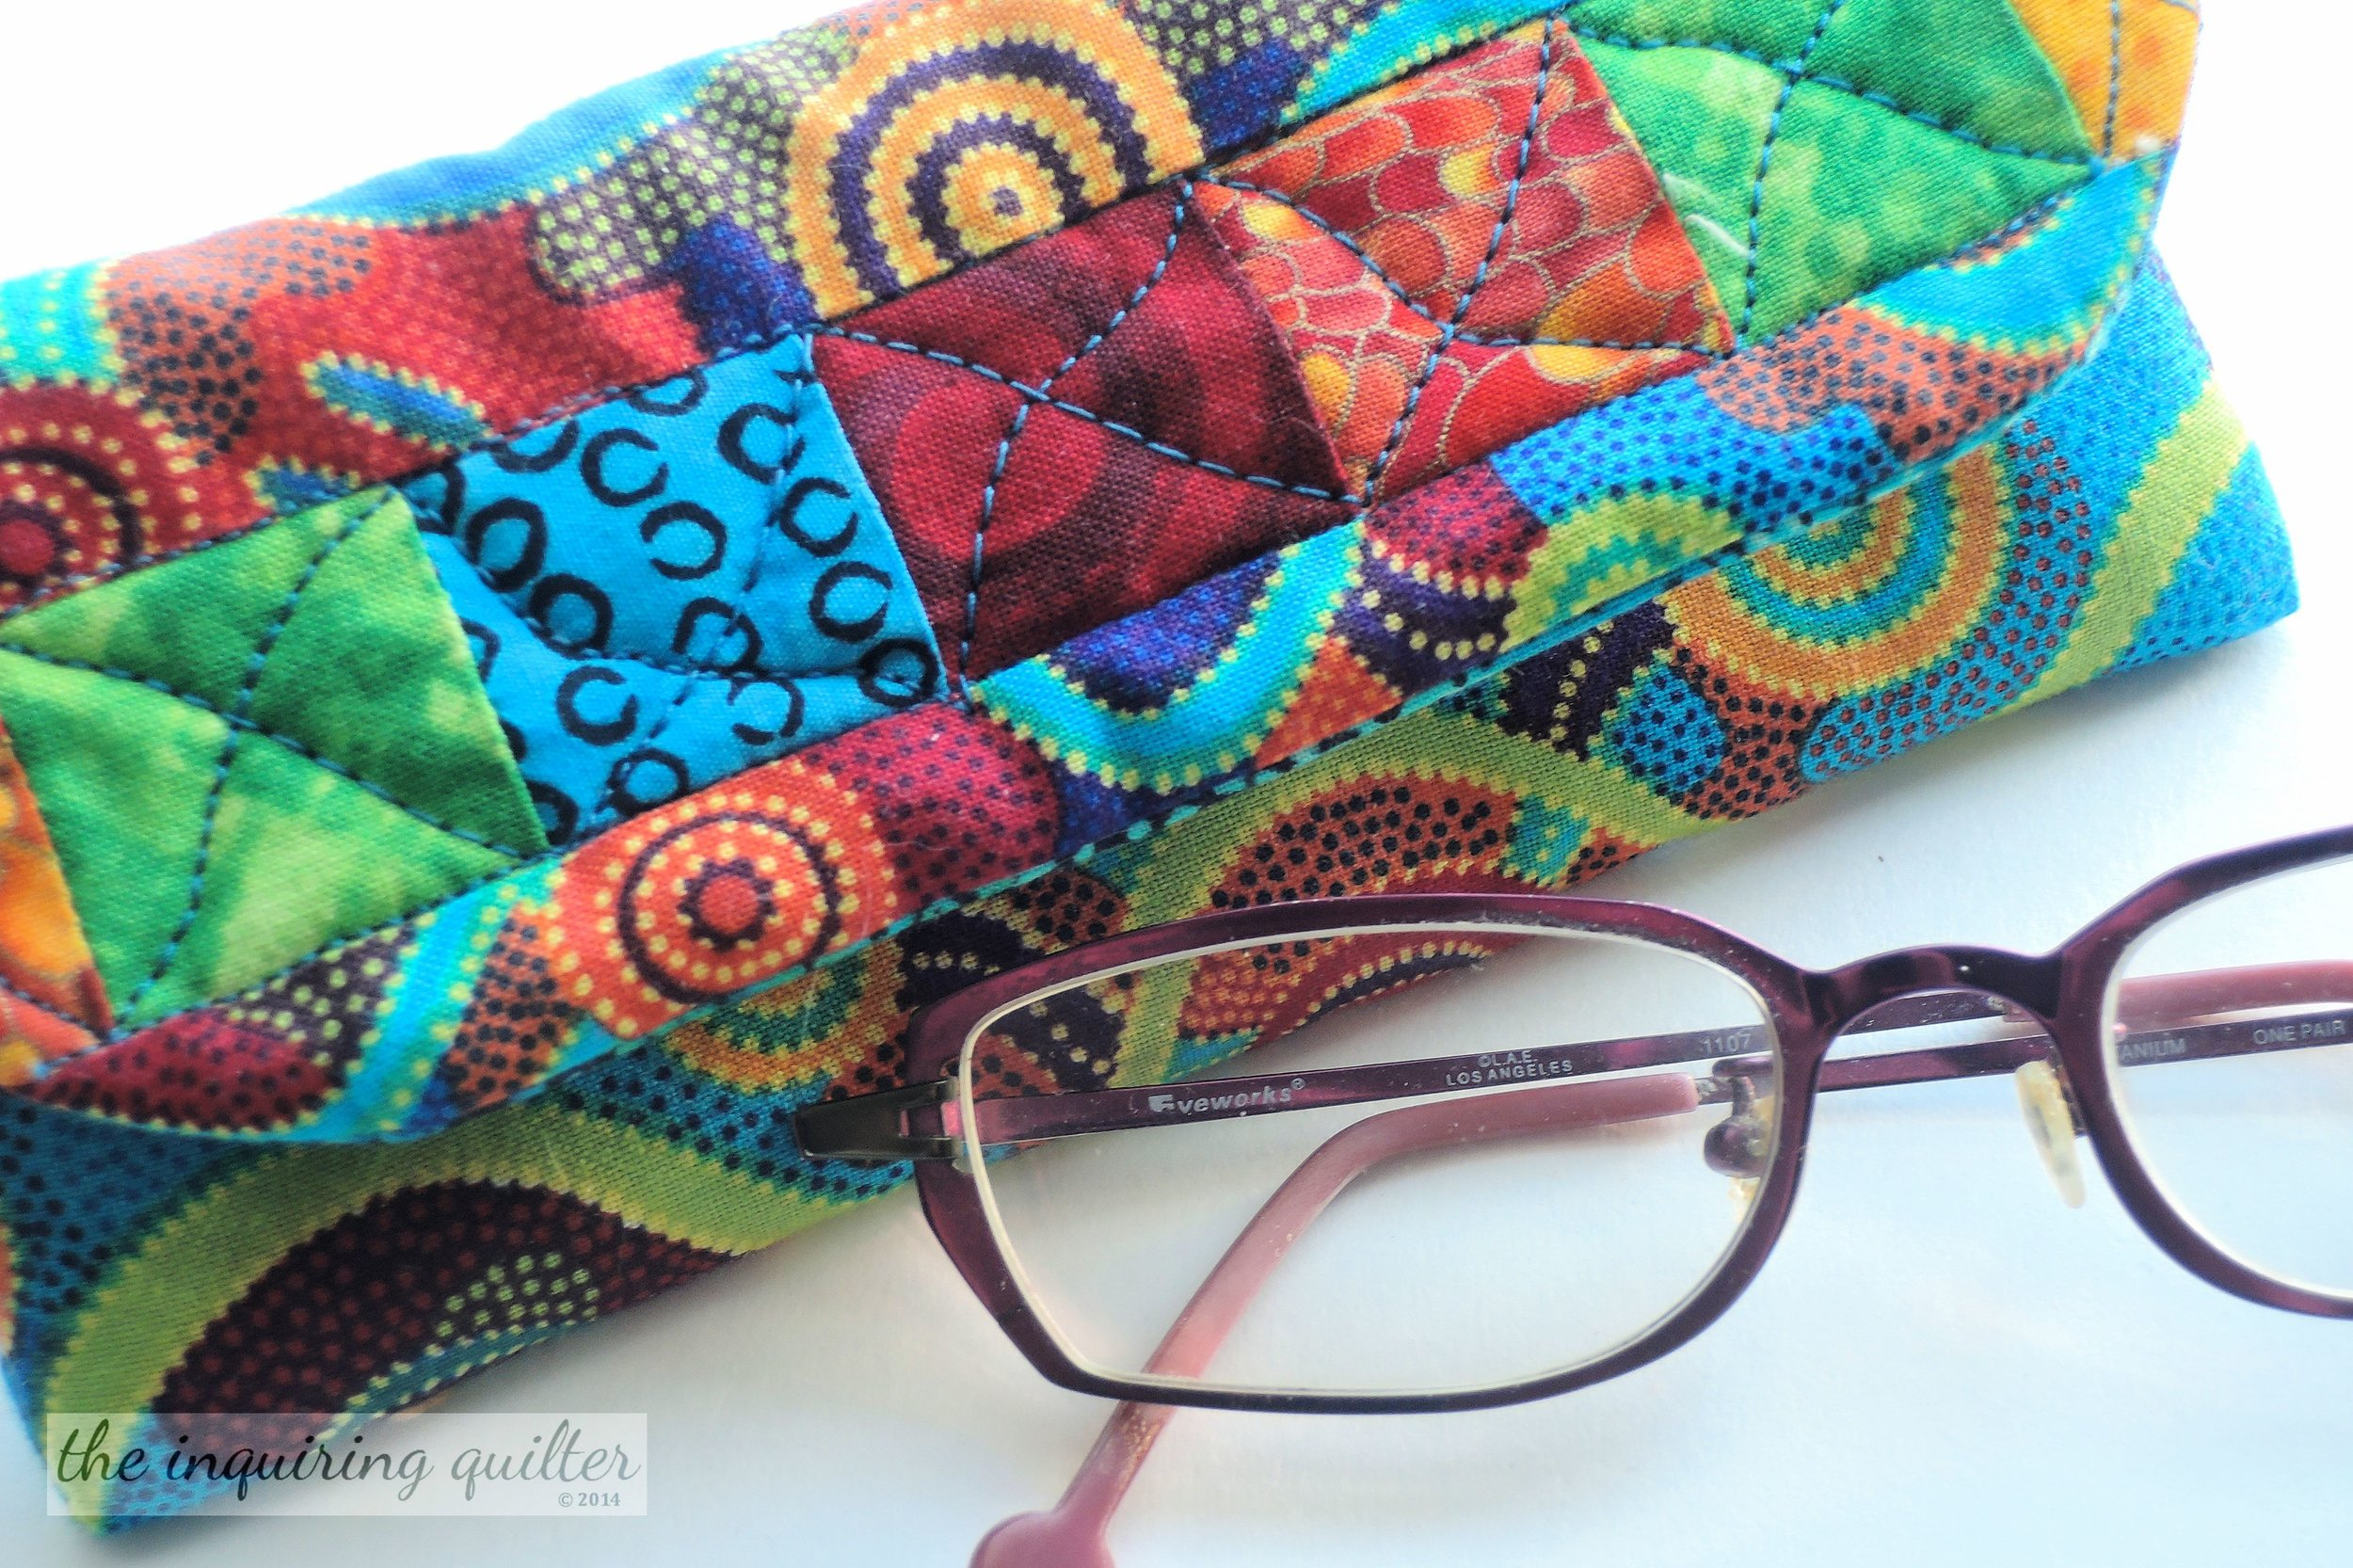 Day Nine: Quilted Eyeglass Case